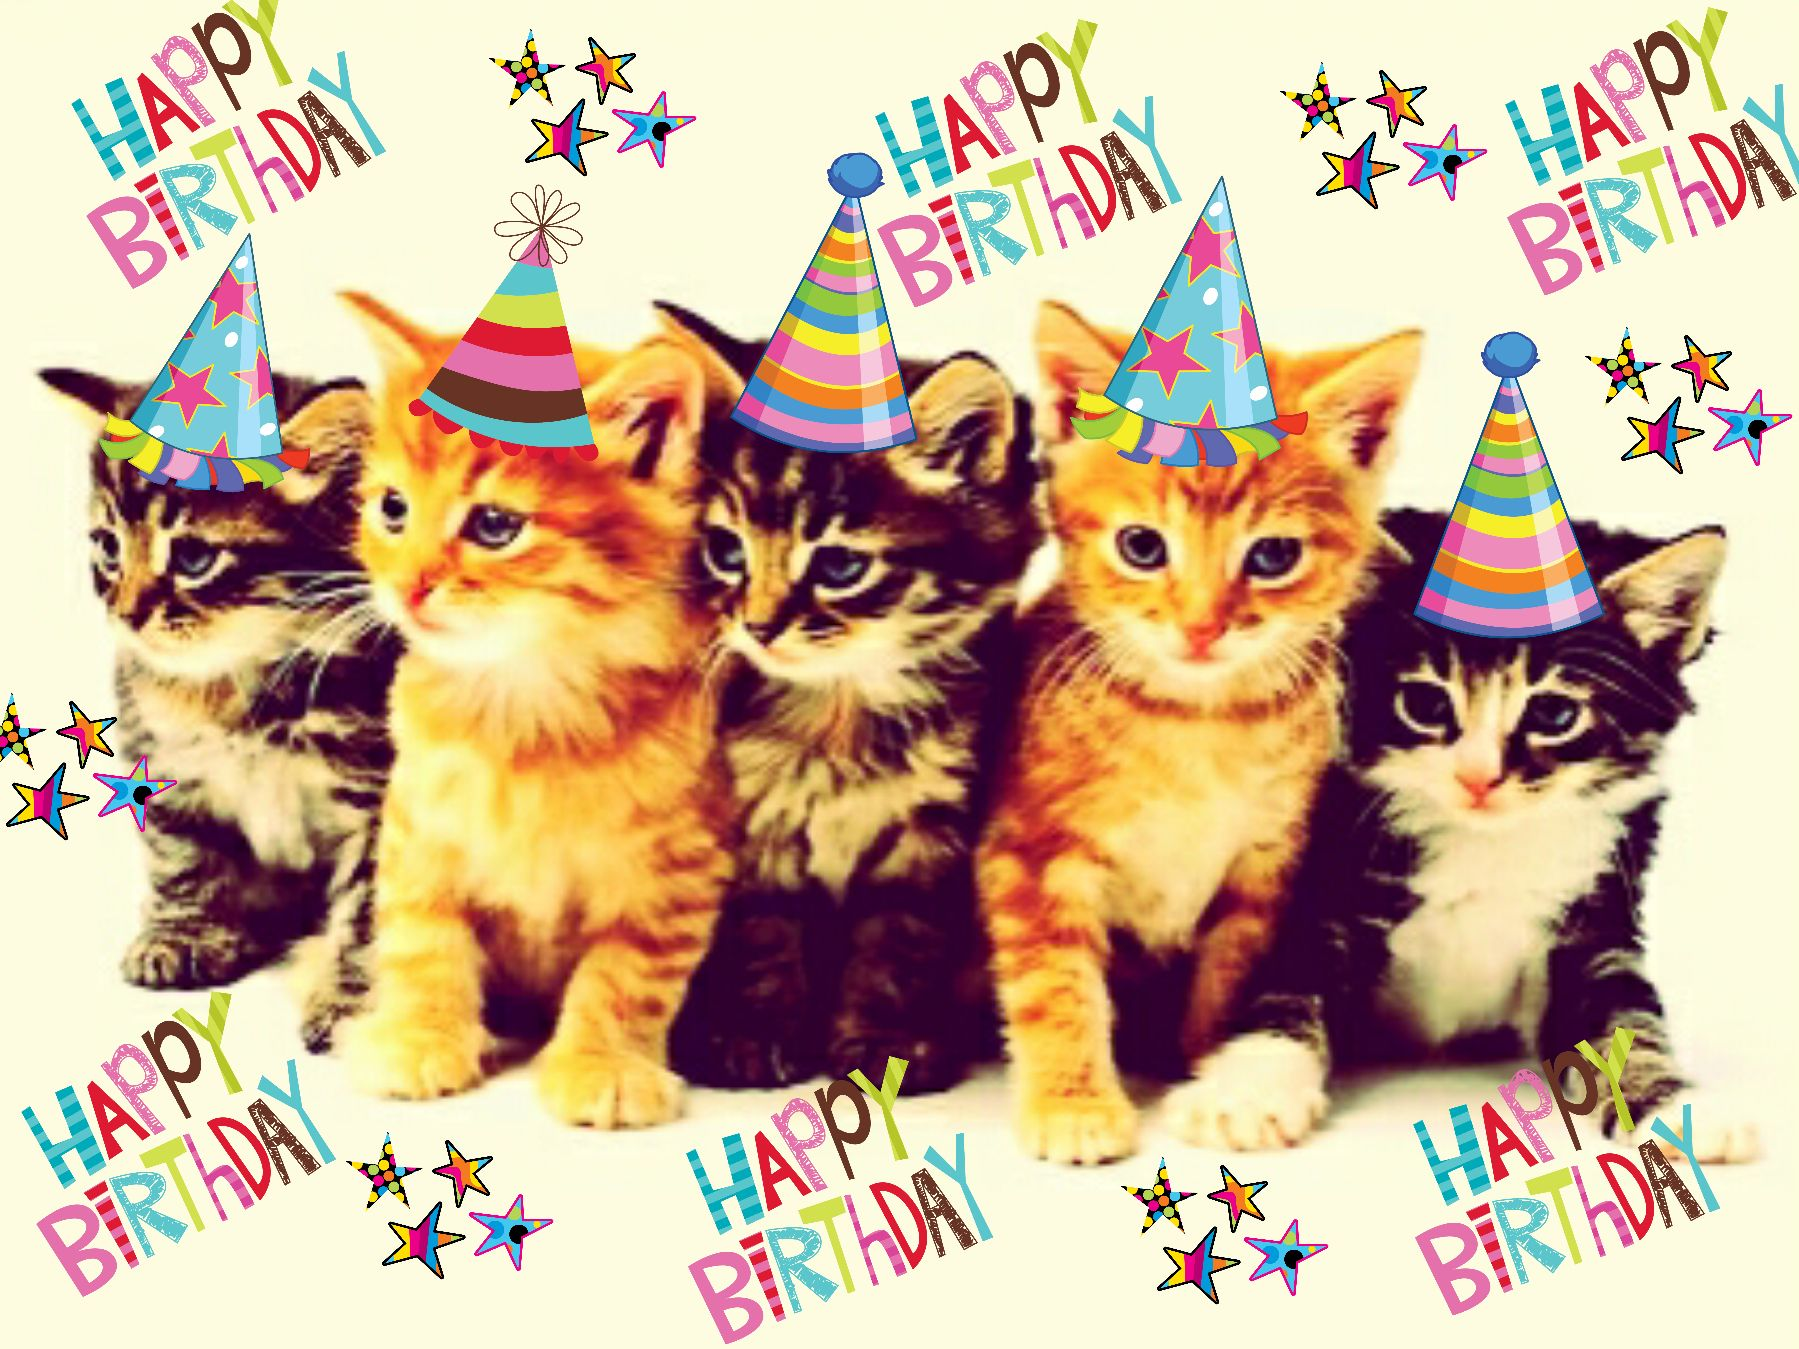 Birthday Wishes, Happy Birthday, Birthday Display, Happy B Day, Cats,